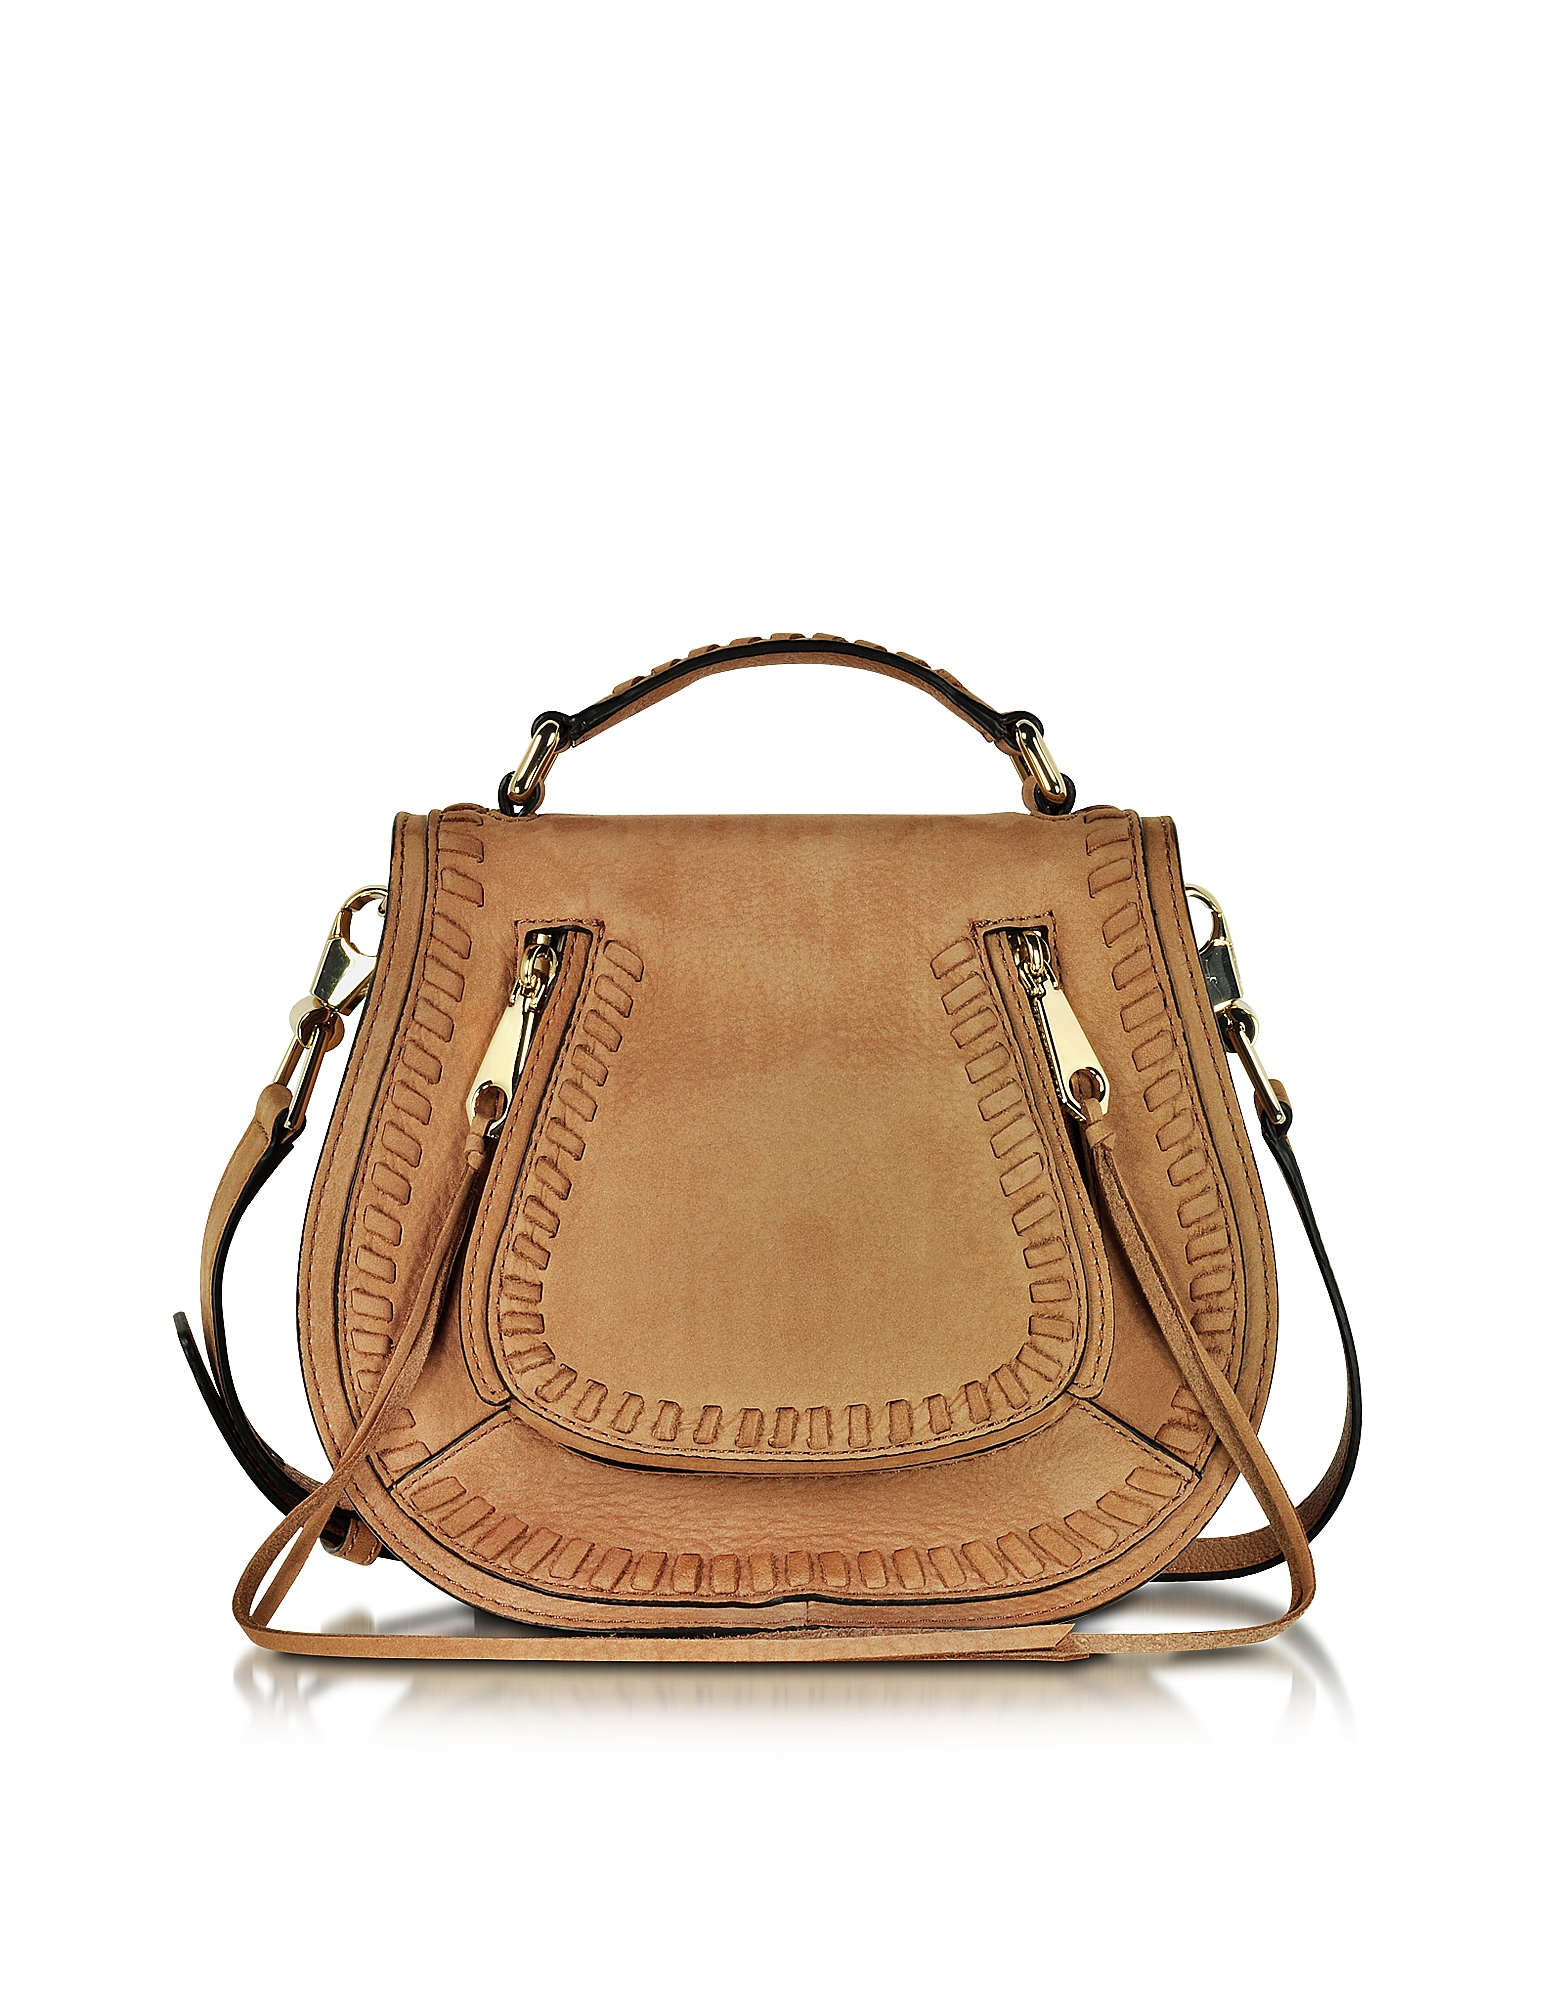 Rebecca Minkoff Vanity Almond Leather Small Saddle Bag